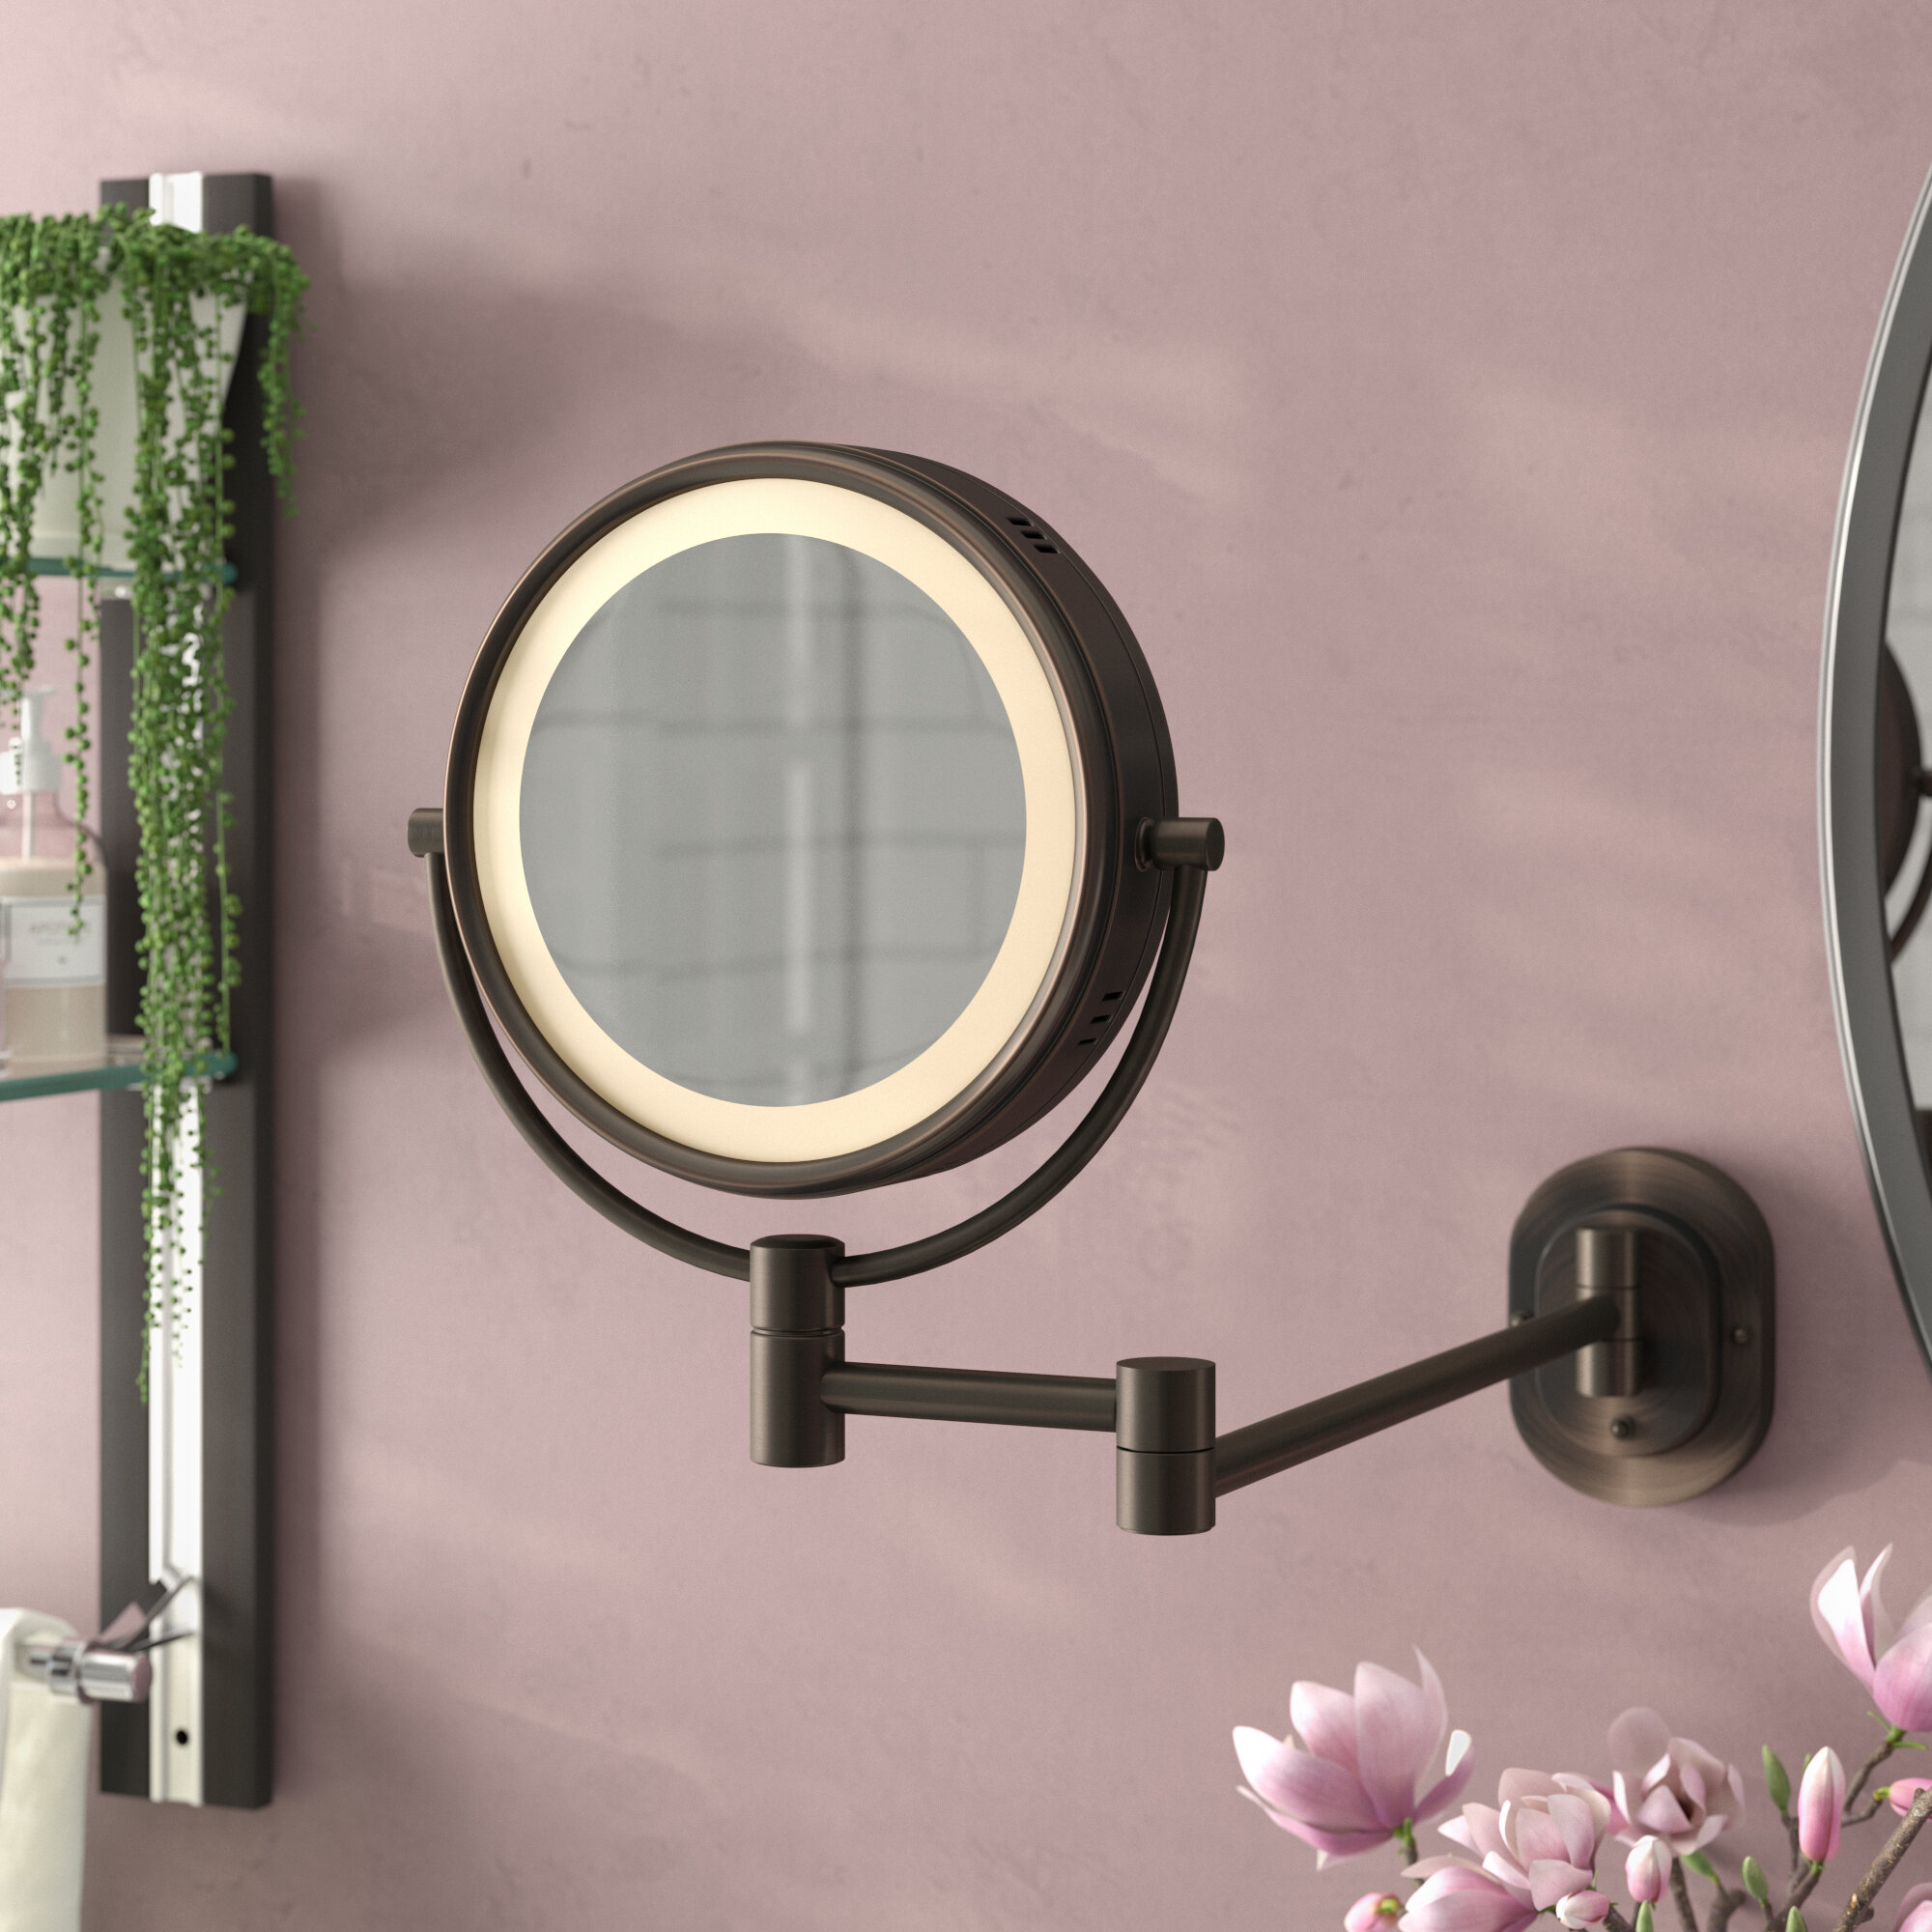 Lighted Wall Mounted Makeup Shaving Mirrors You Ll Love In 2020